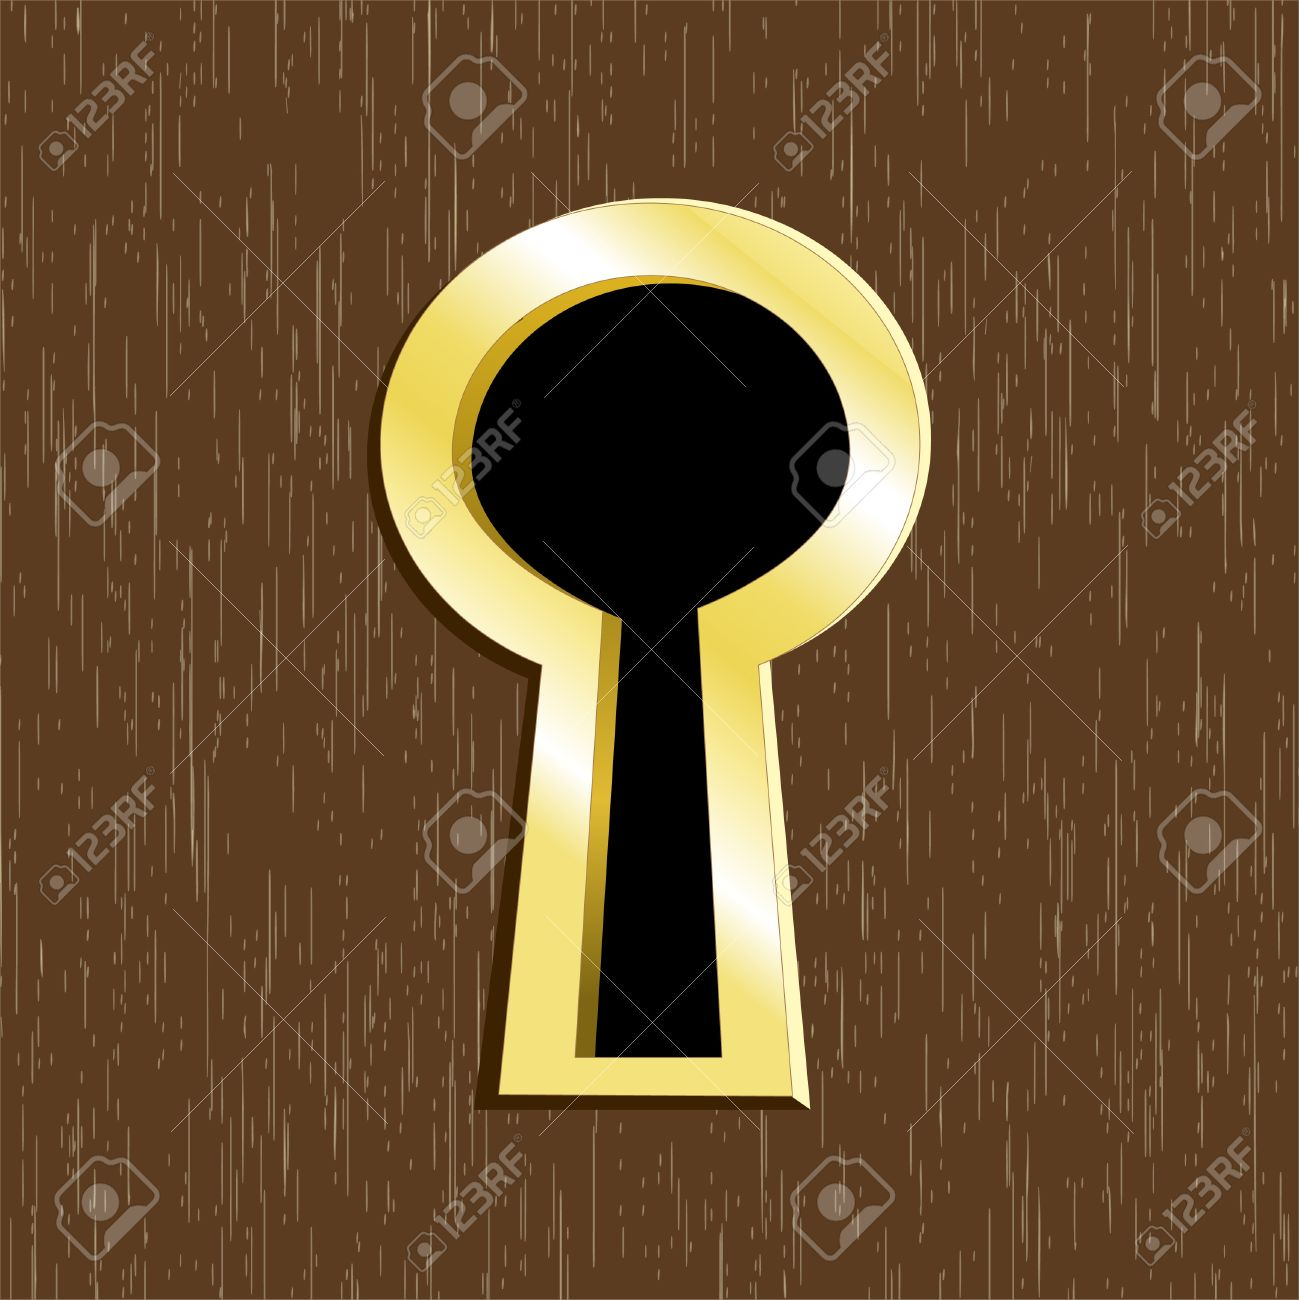 Set with africa animals black white stock vector 169 insima - Inquisitive Door Keyhole Of Golden Metal On Dark Wooden Door